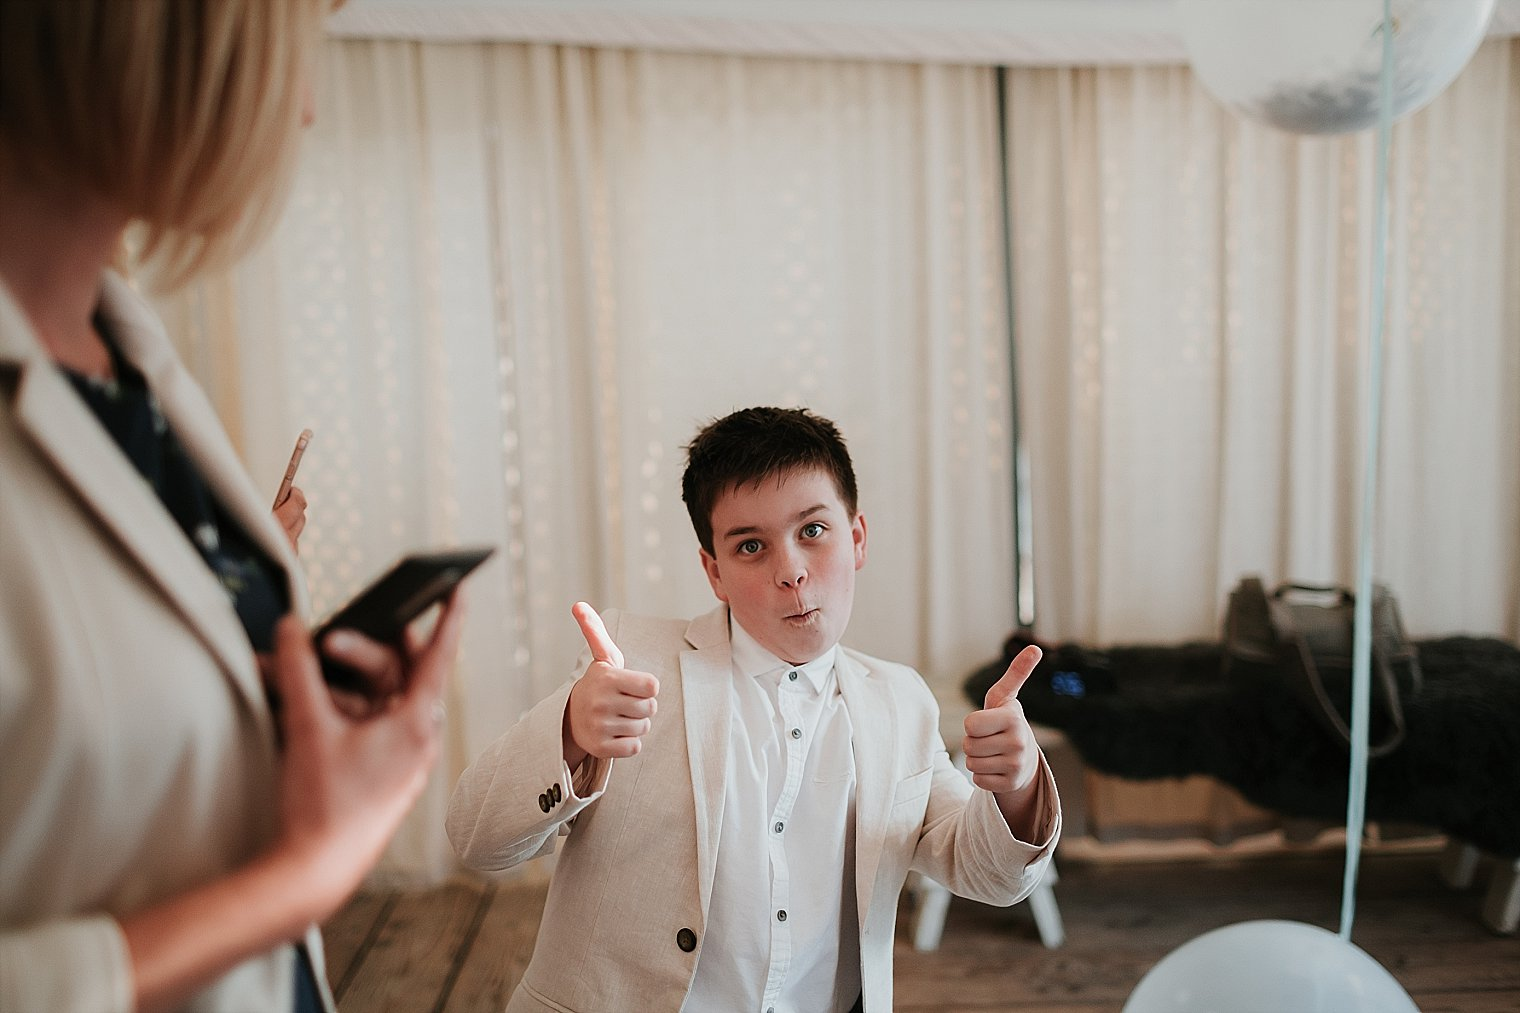 Young wedding guest giving the thumbs up